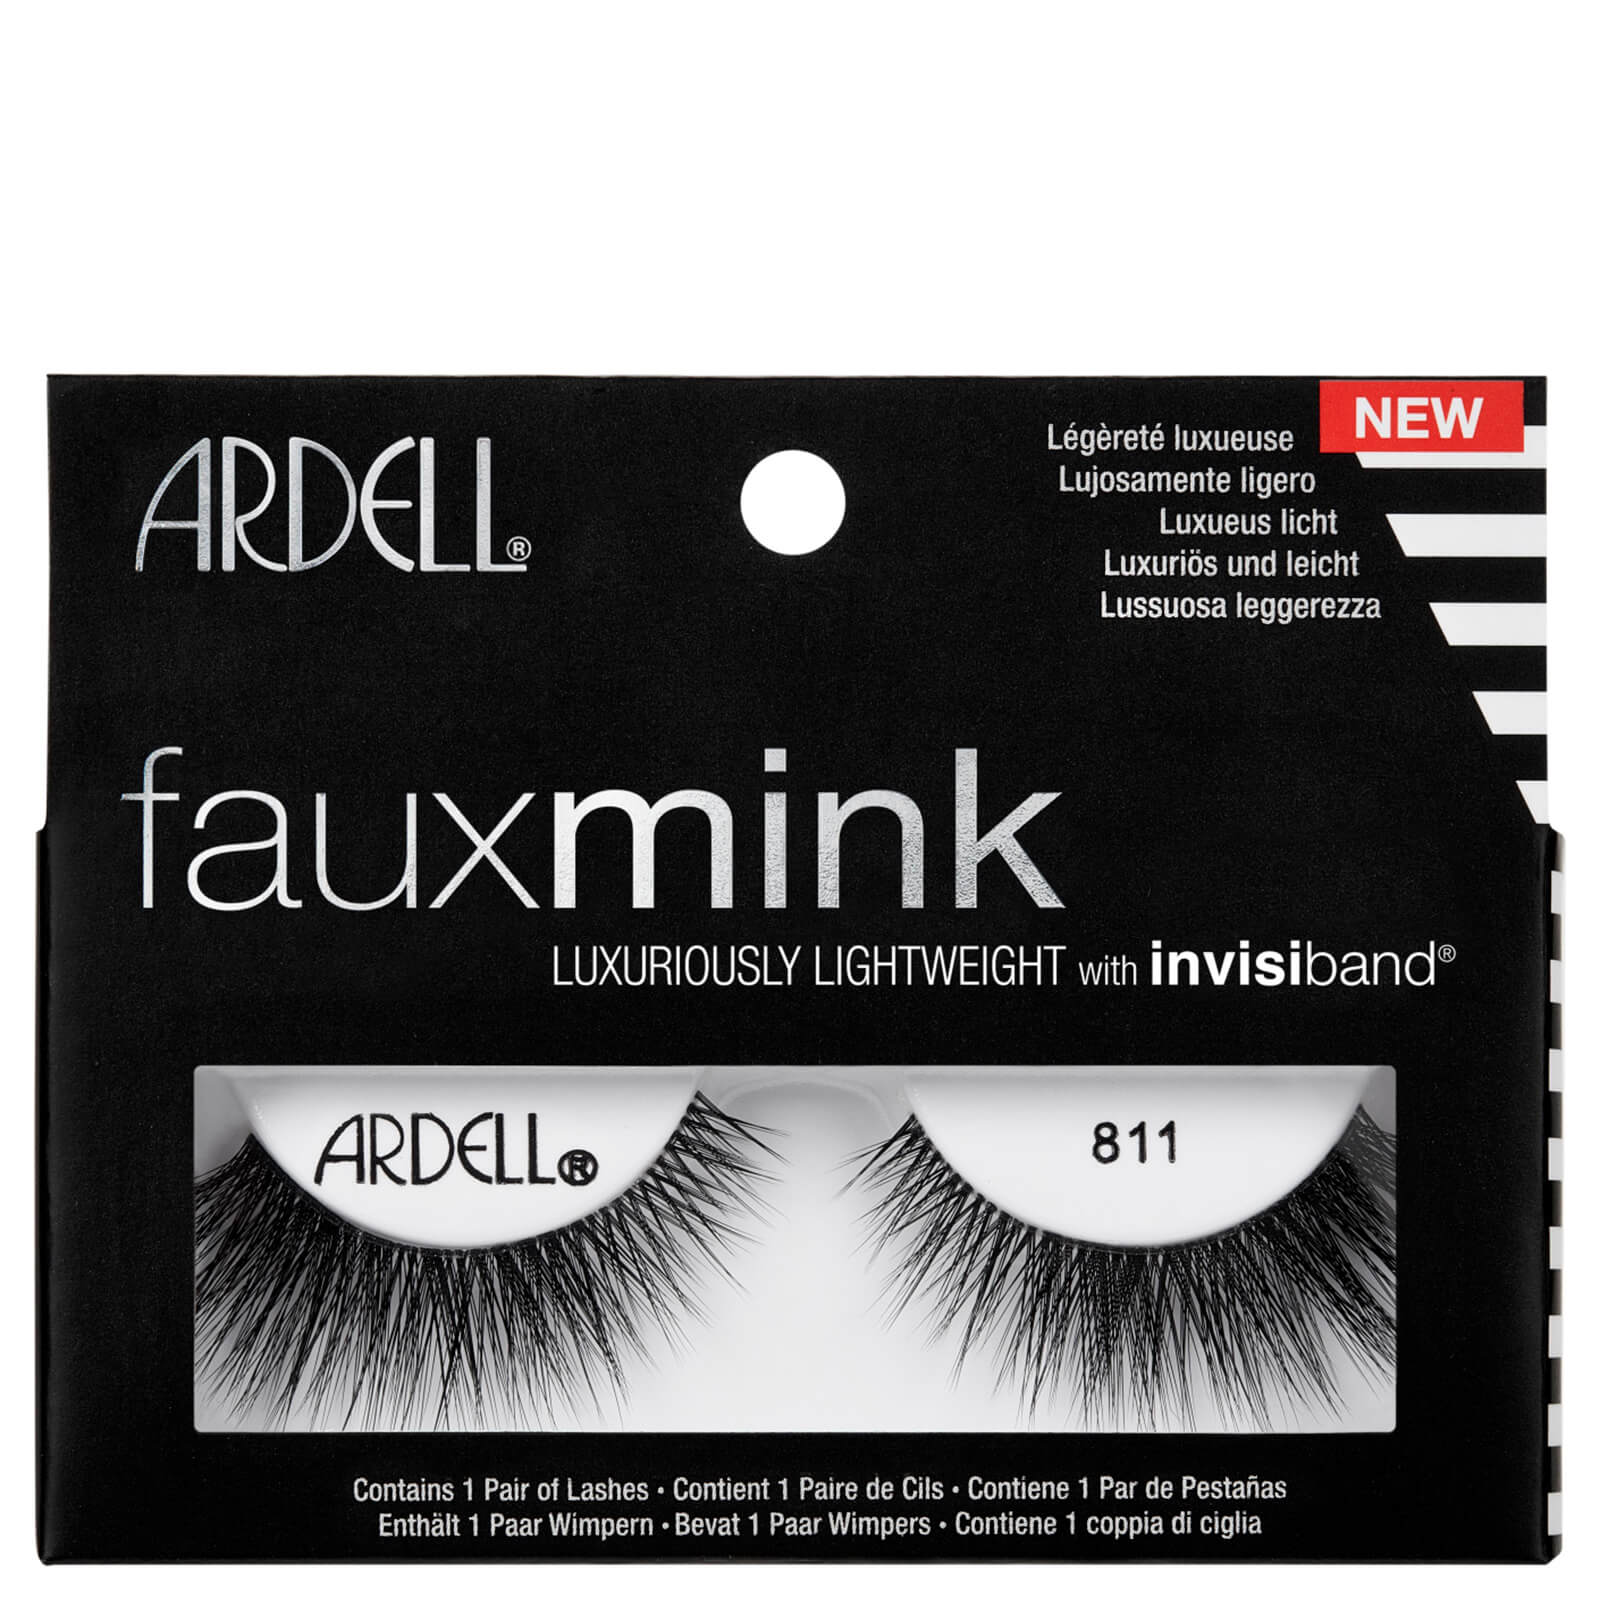 884dfb88e2c Ardell Faux Mink 811 Lashes - Black | Free Shipping | Lookfantastic